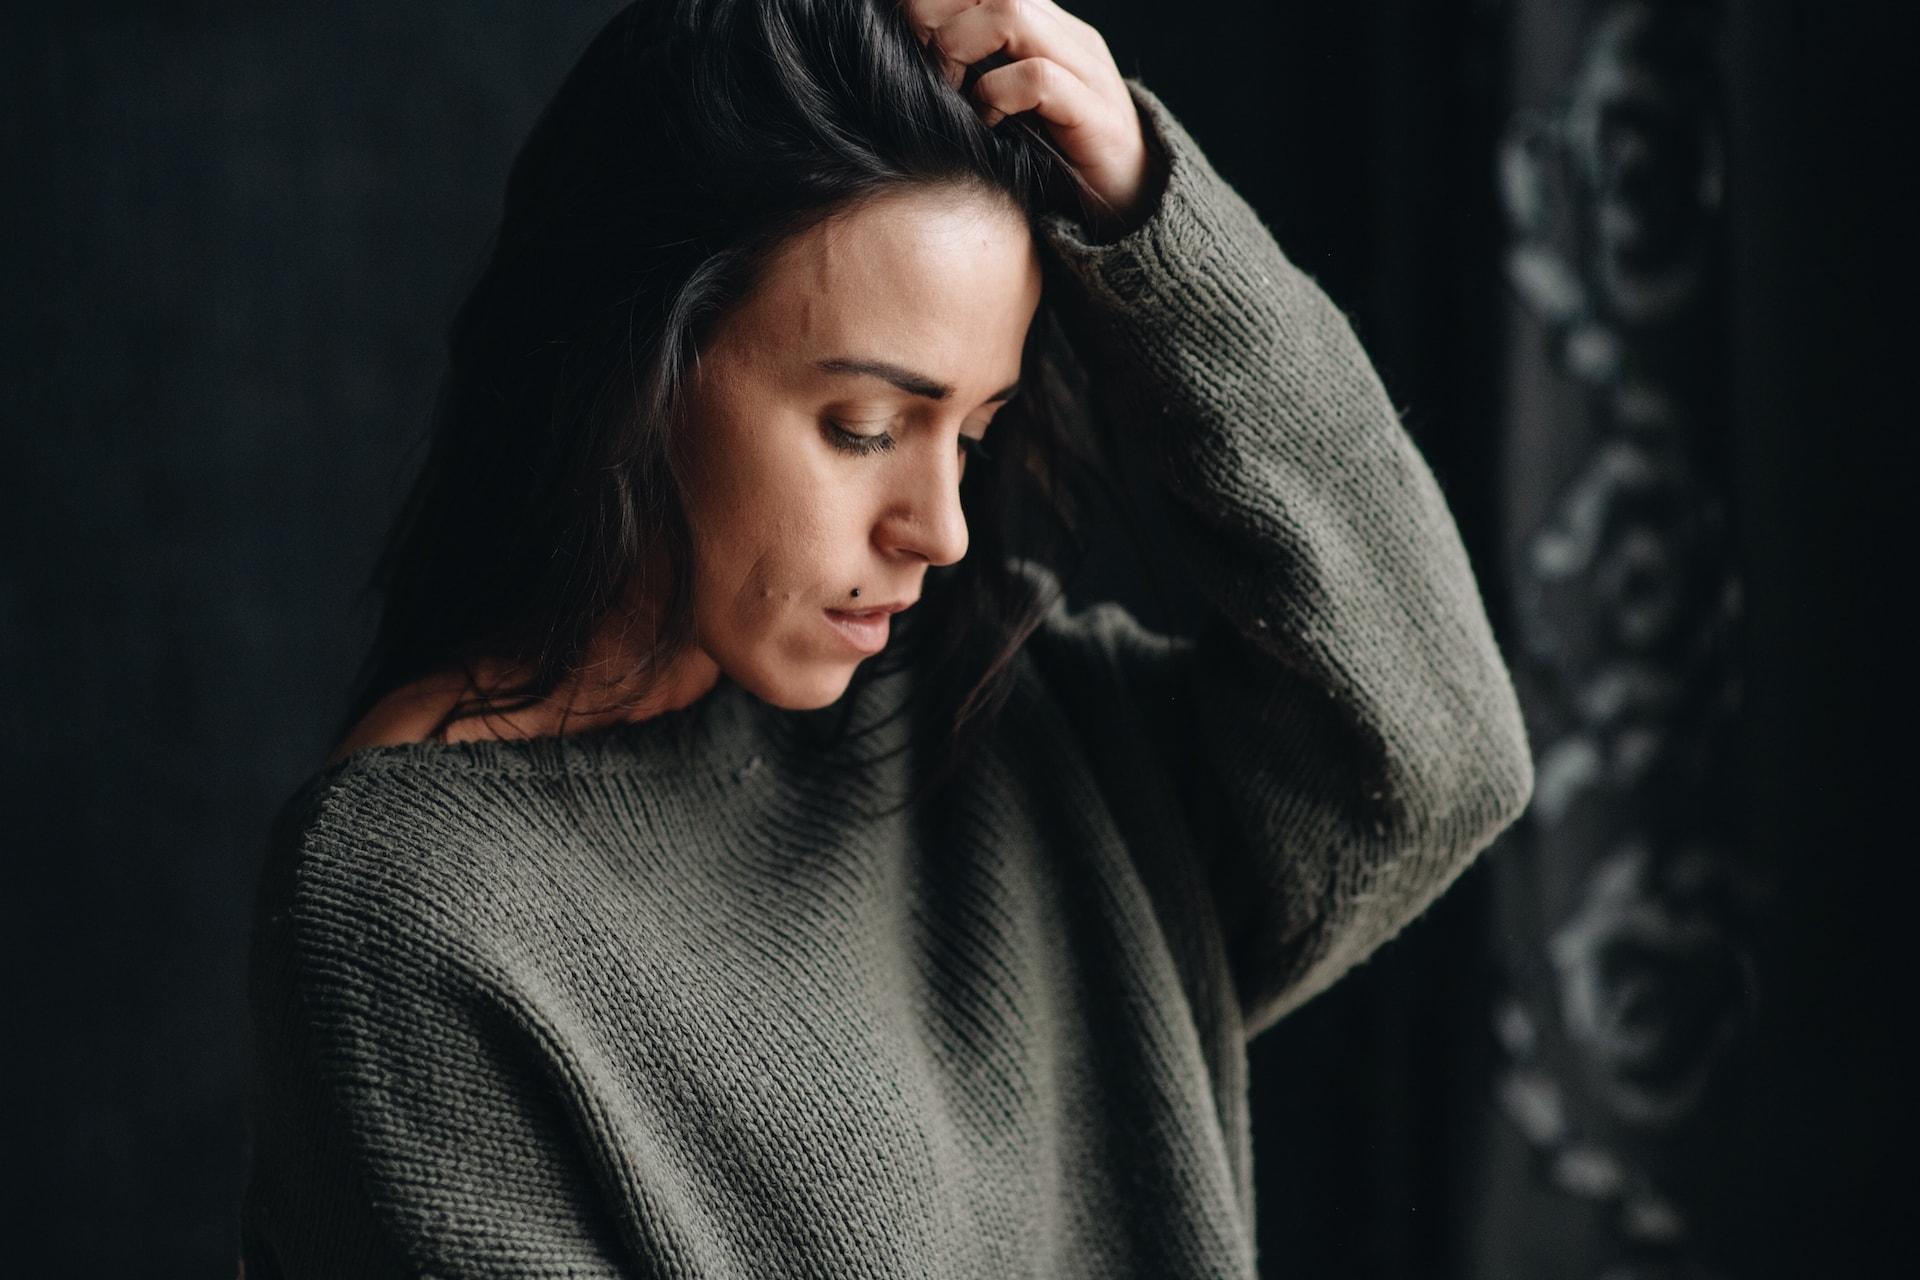 How Is COVID-19 Affecting Adults' Mental Health?